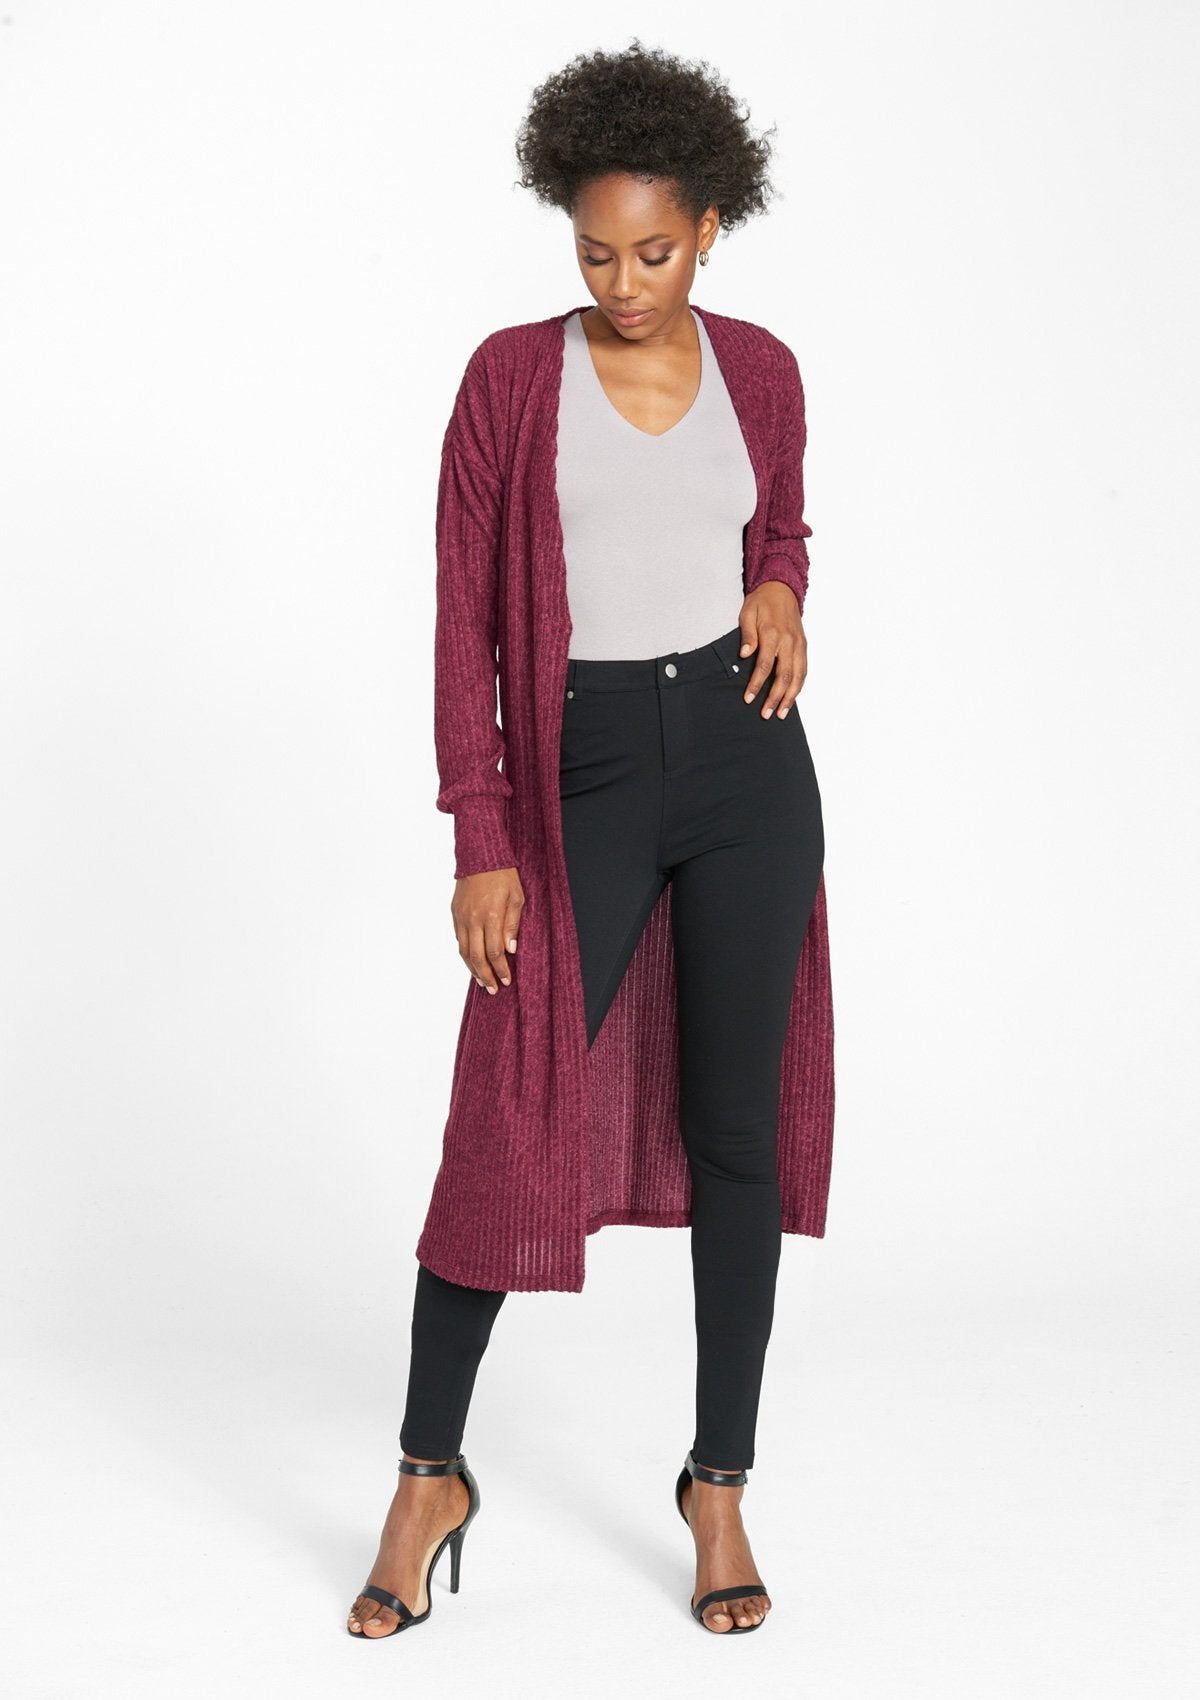 Alloy Apparel Tall Rib Knit Duster for Women in Heather Wine Size 2XL   Polyester